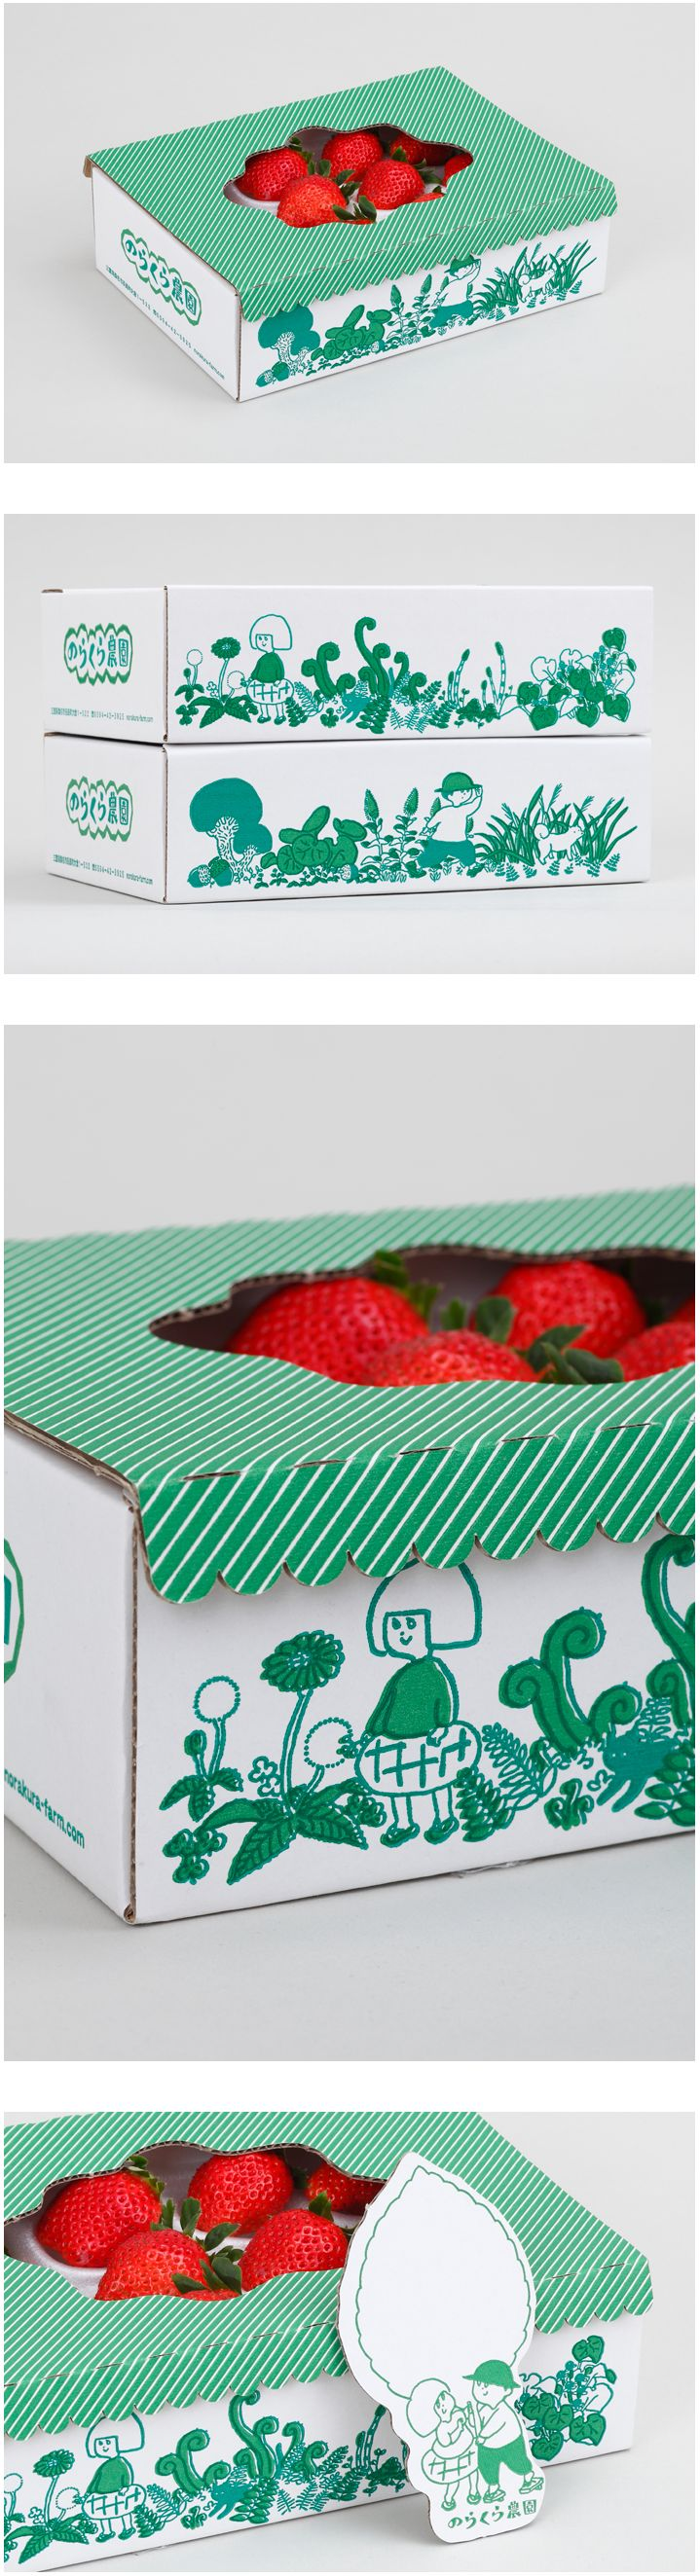 I really like this package. Its attractive and the strawberries (the product) really stands out as well by the use of contrasting colours. I want to have some strawberries right now! CC